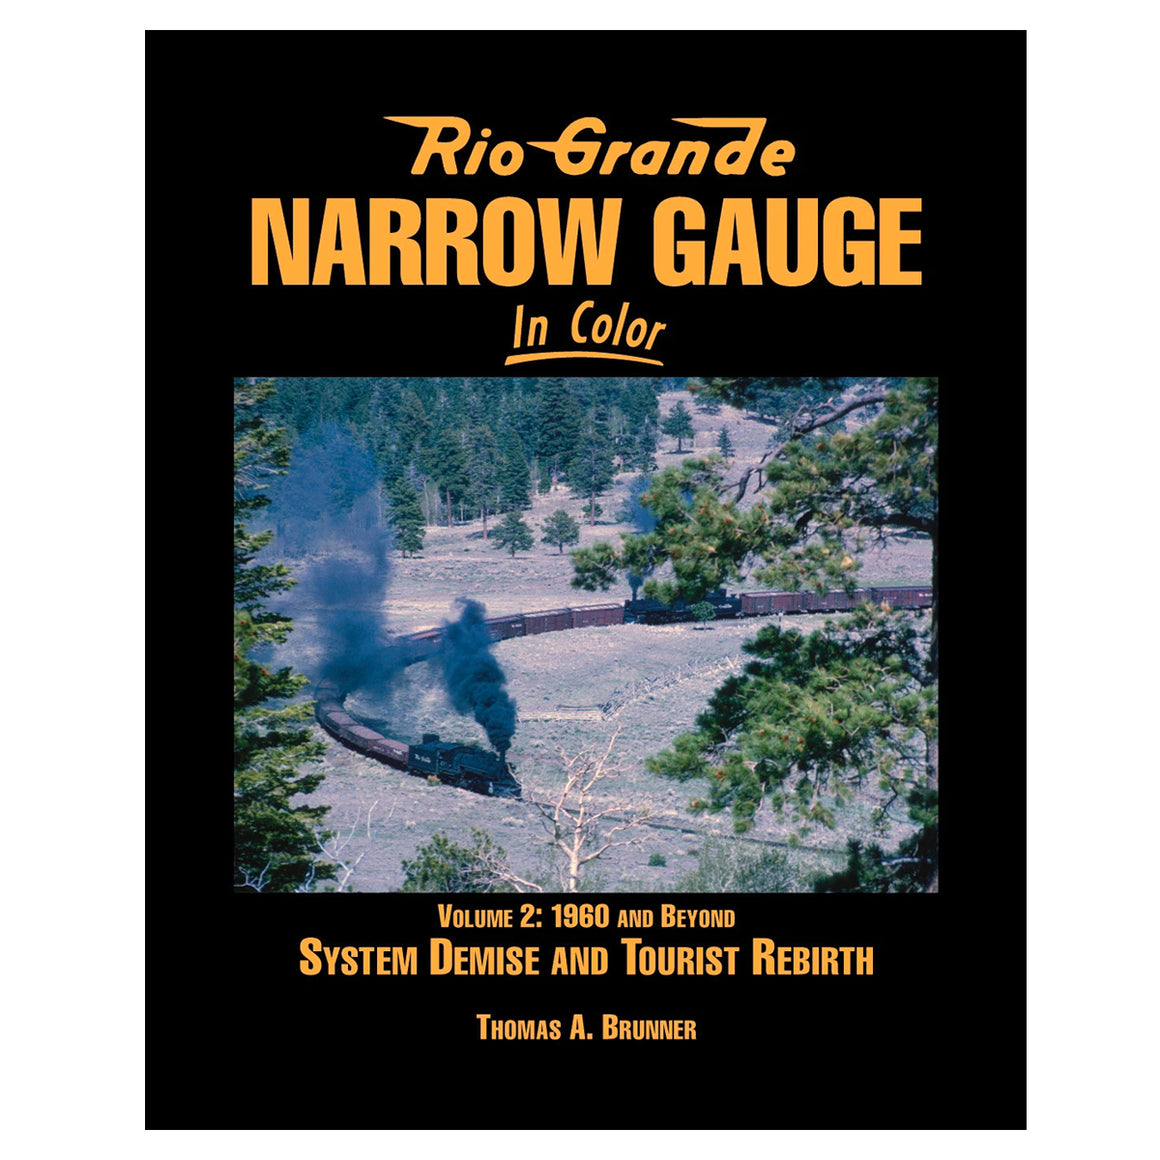 Books: Rio Grande Narrow Gauge In Color Volume 2: 1960s and Beyond